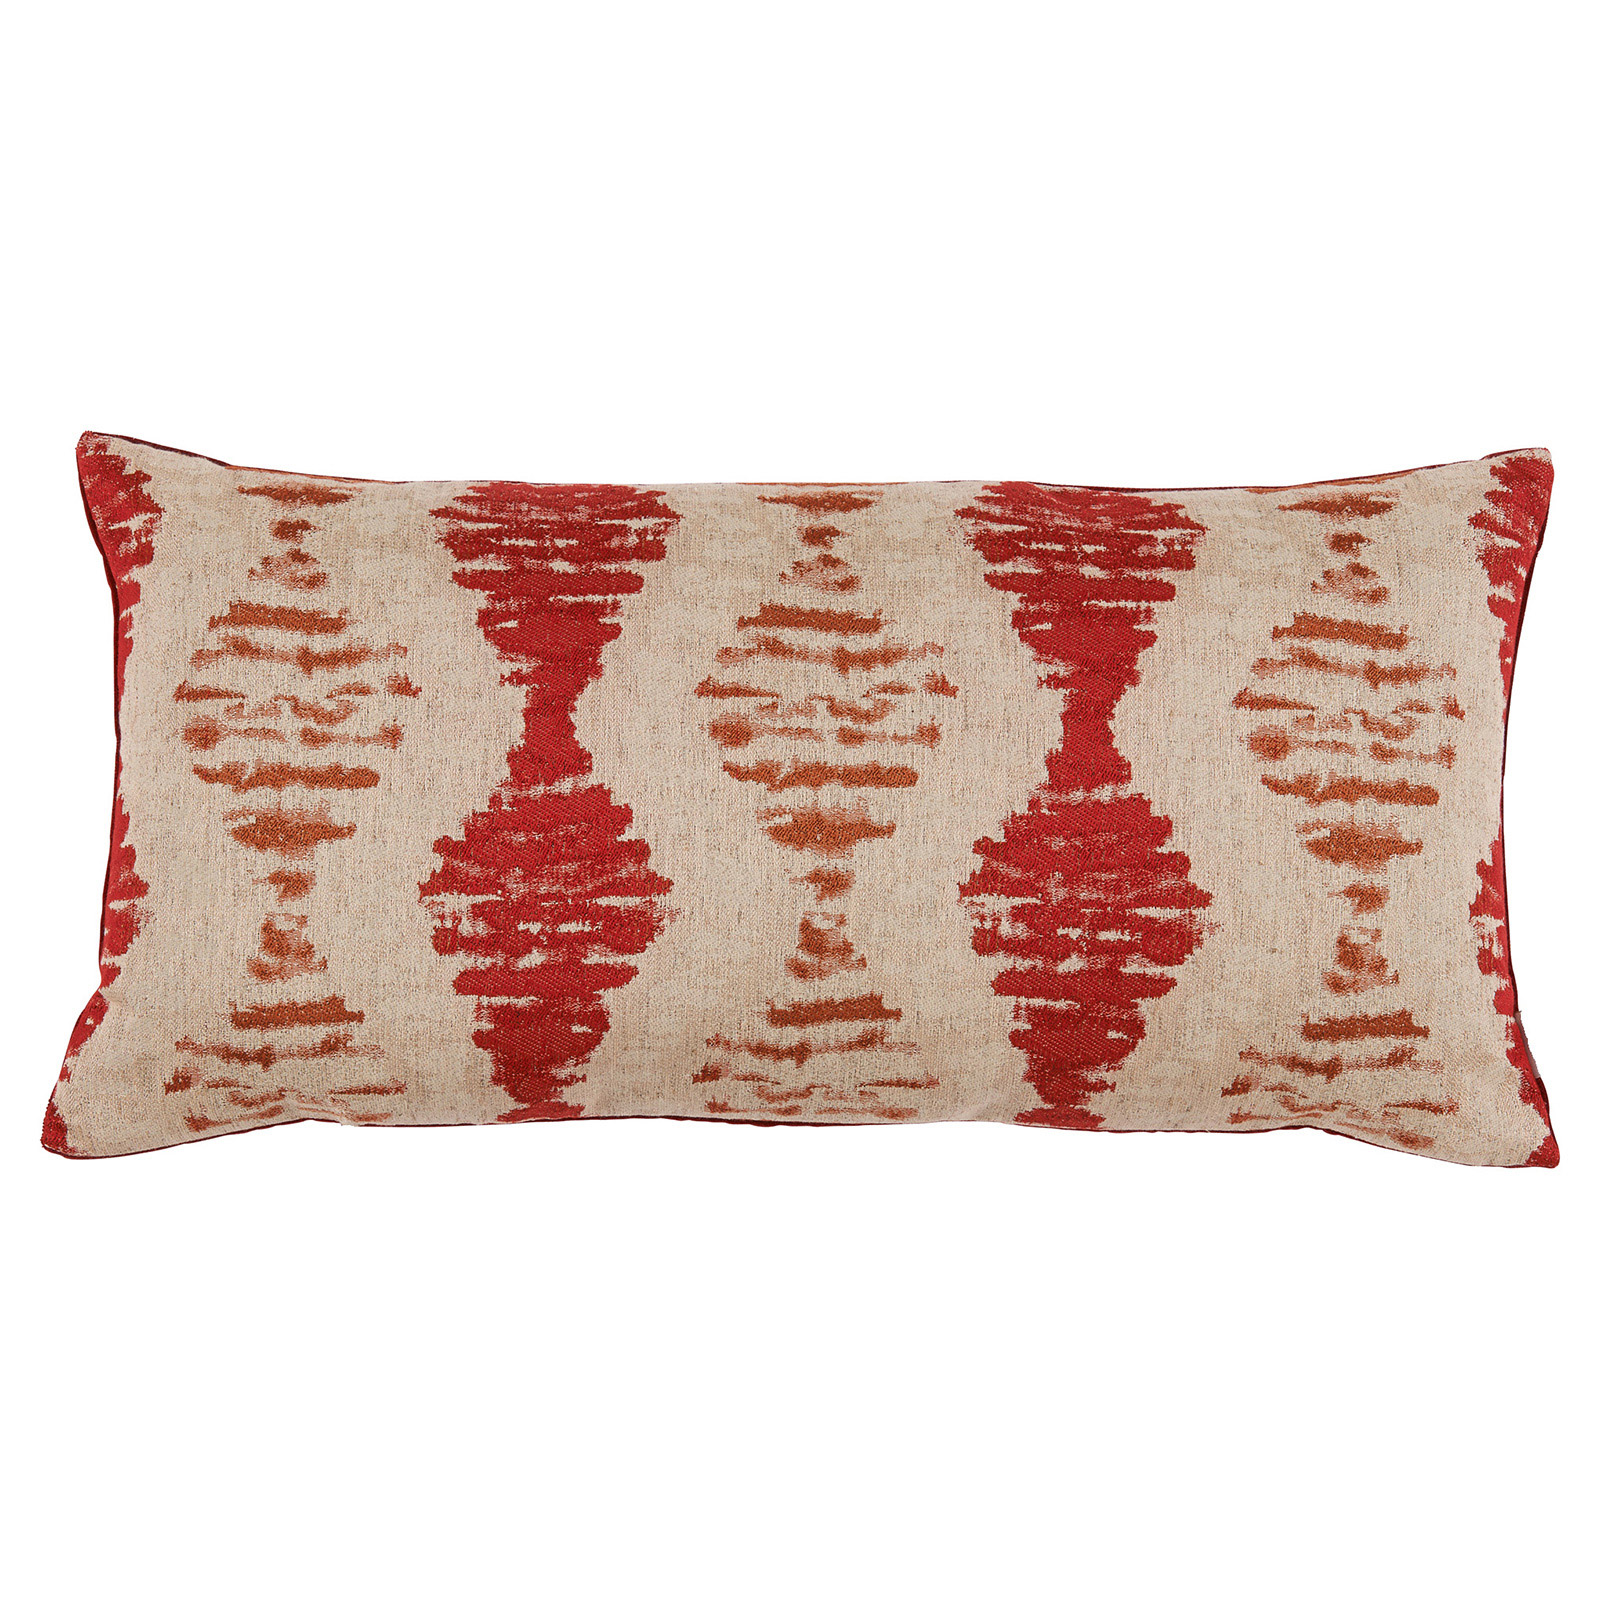 Marnie Global Distressed Diamond Rust Red Pillow - 14x28